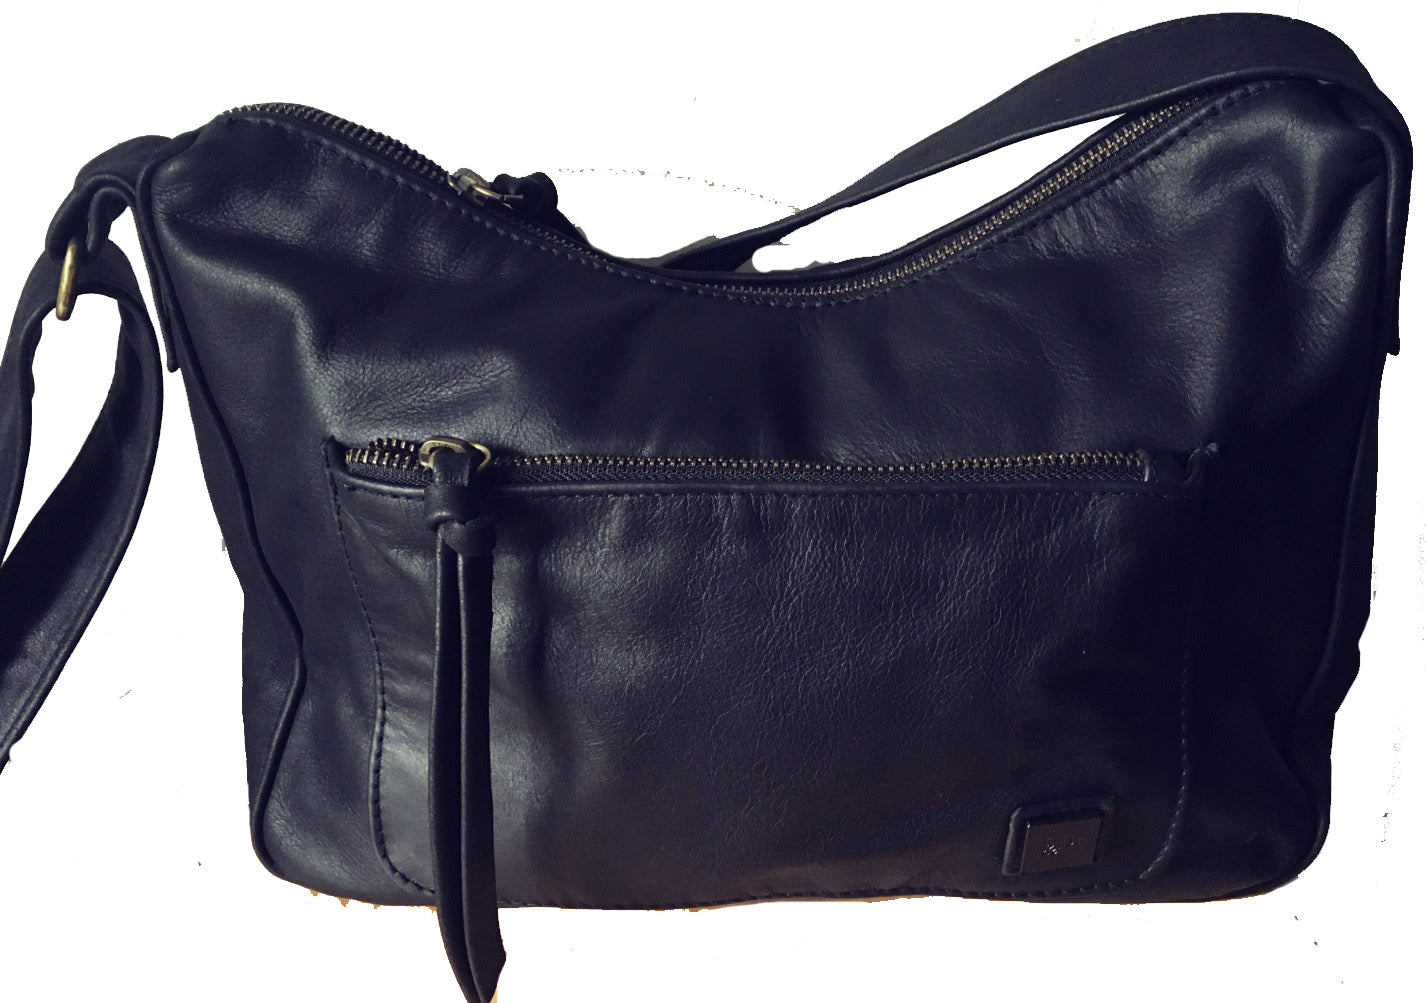 d241ed217833 The Mini Sender-Curved slouchy hobo style handmade bag with wide crossbody  strap.